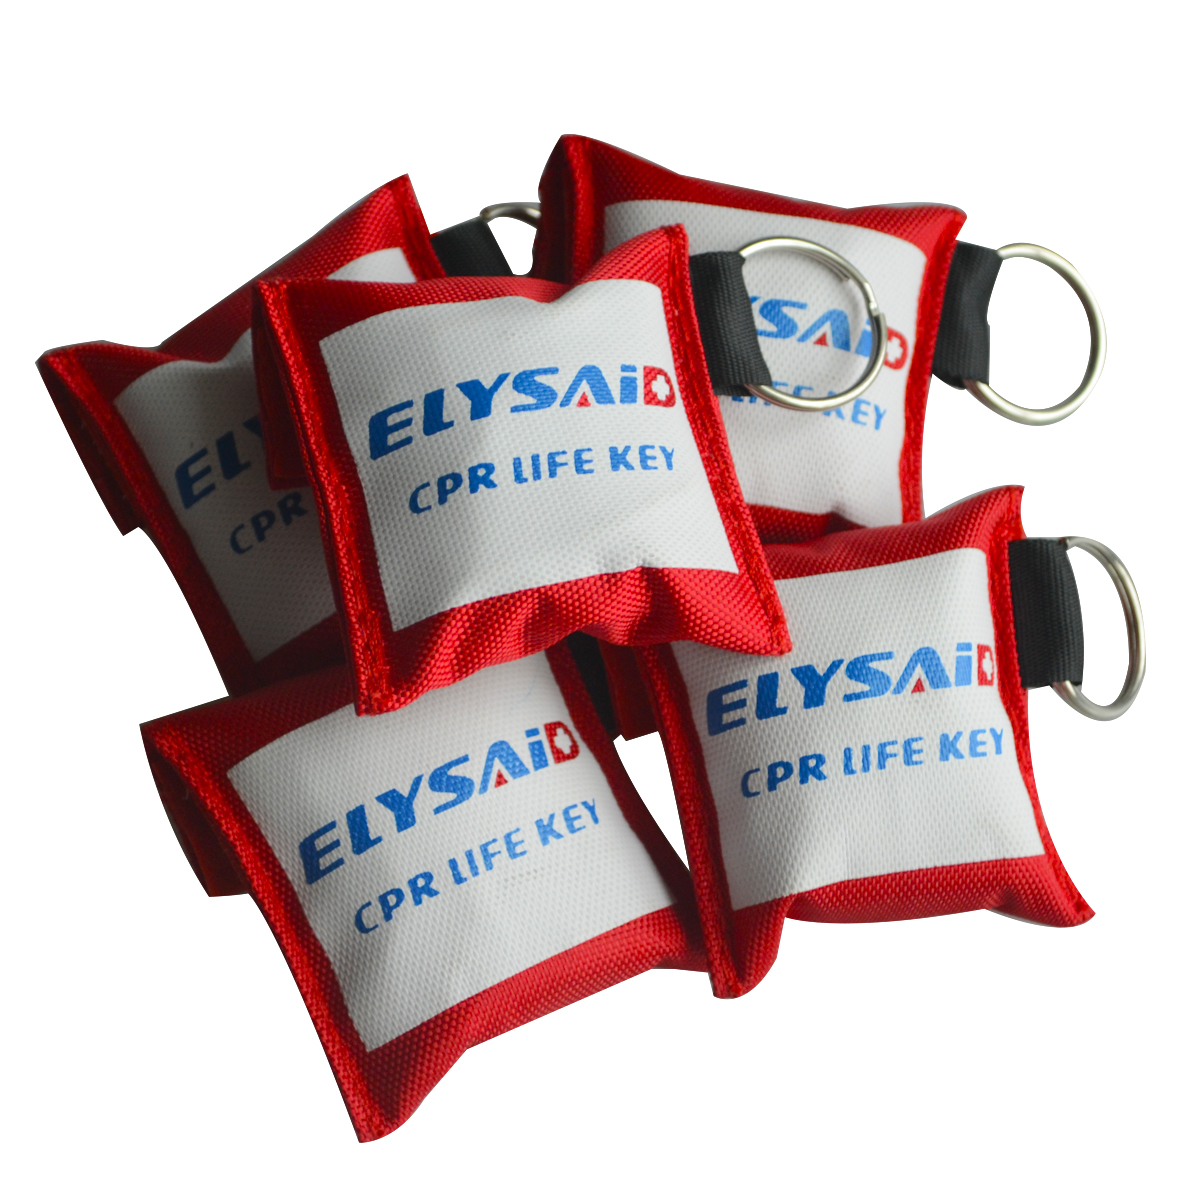 New 100Pcs/Lot CPR Resuscitator Mask CRP Face Shield With Keychain Key Ring One-Way Valve With Gloves Emergency Rescue Kit 100pcs lot isd1820py dip 14 new origina page 9